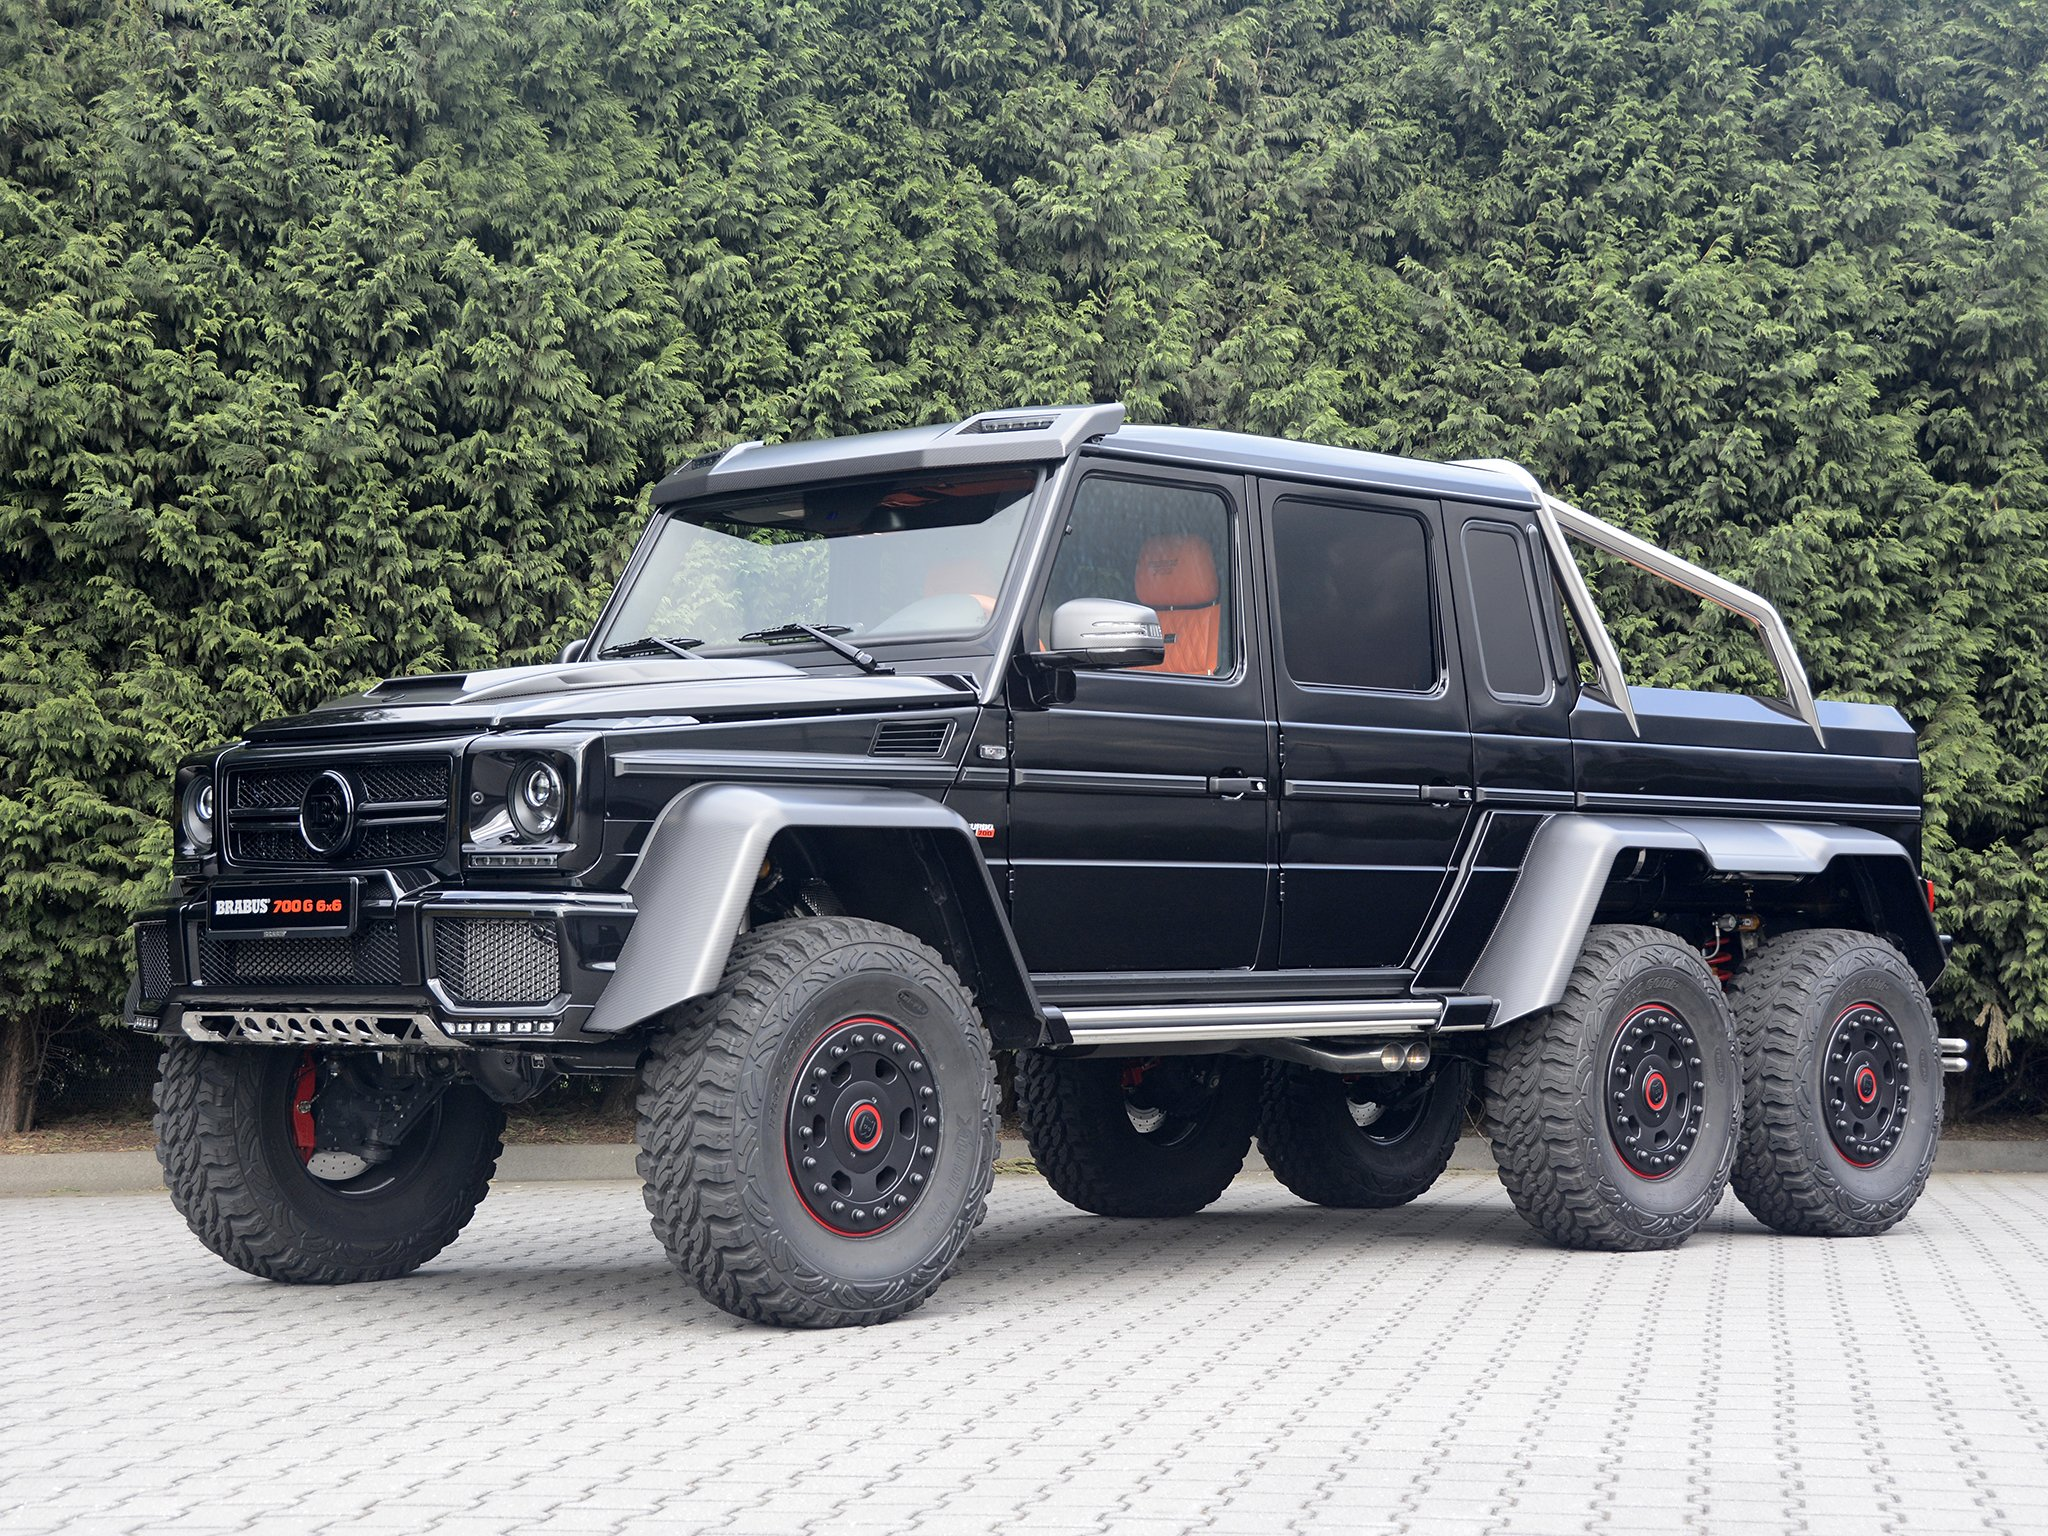 2013 brabus mercedes benz g63 amg 6x6 w463 pickup offroad wallpaper 2048x1536 630696. Black Bedroom Furniture Sets. Home Design Ideas